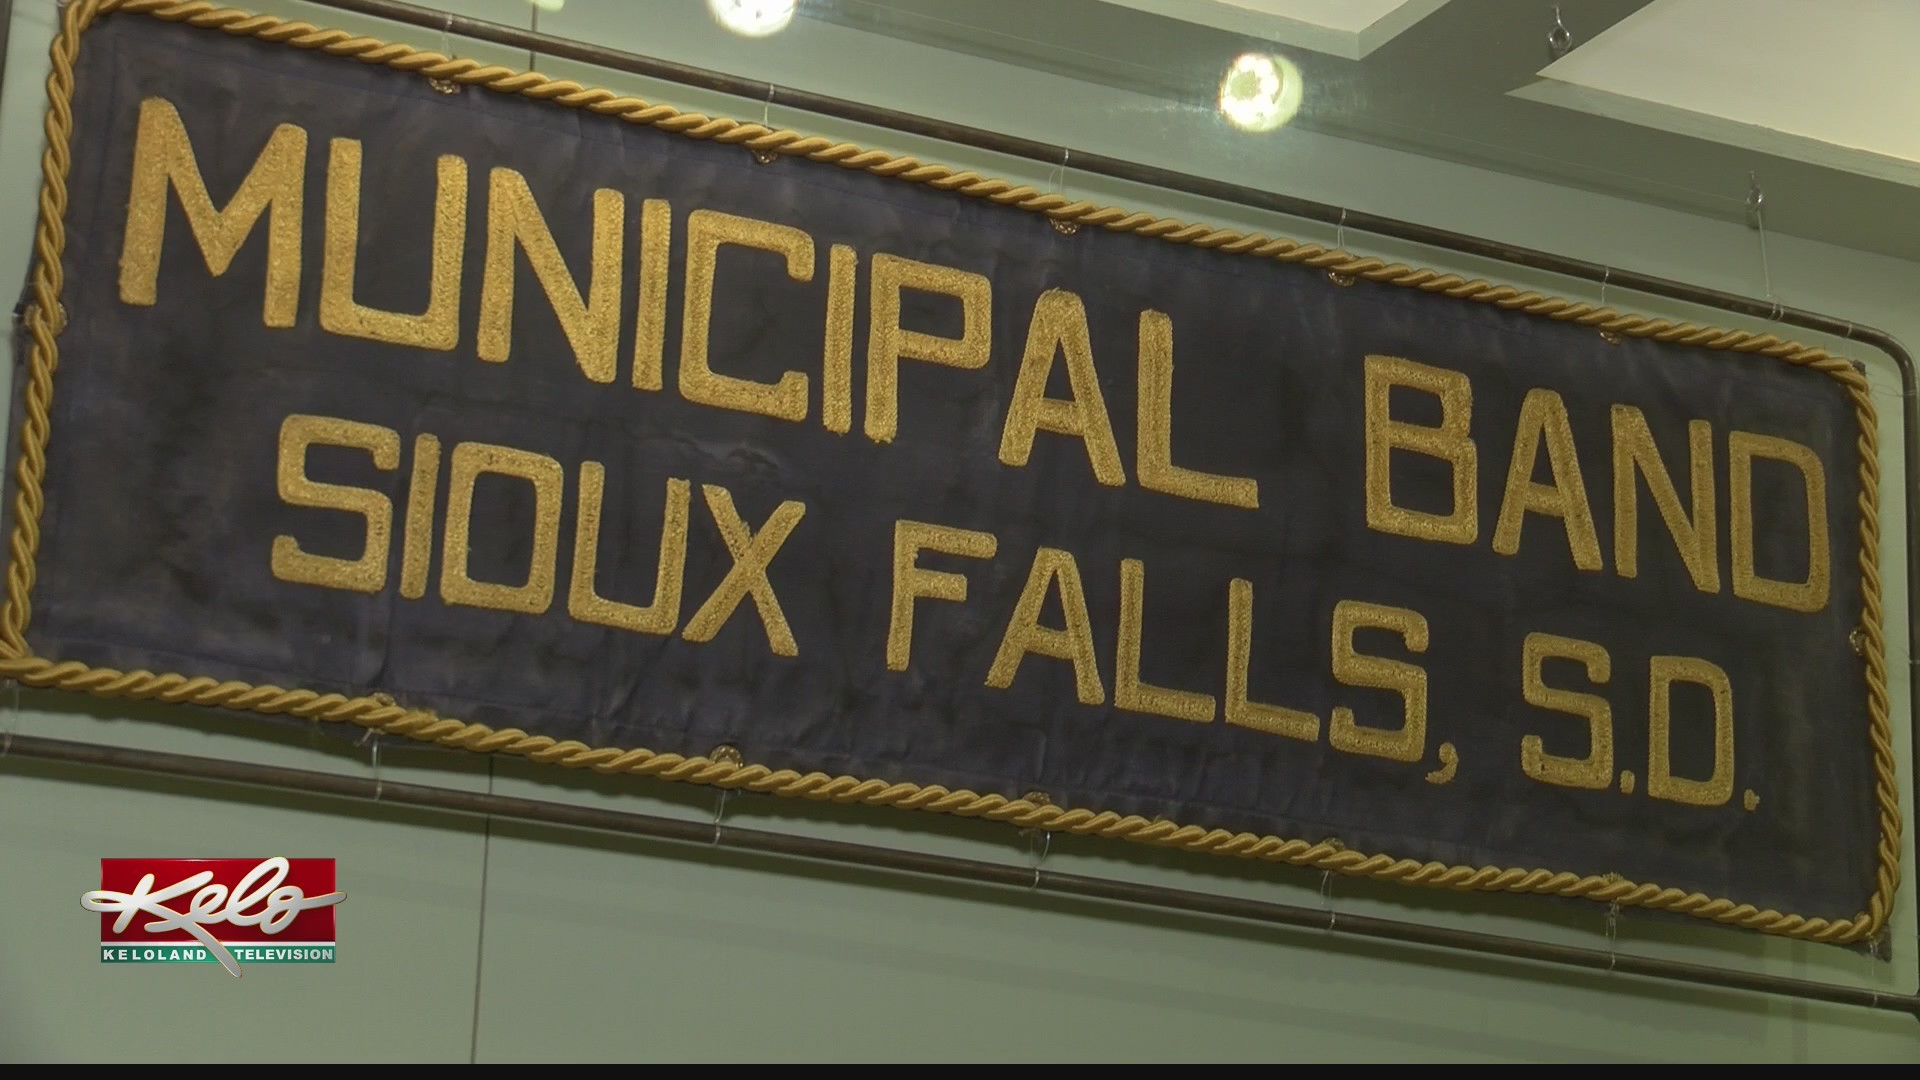 The Sioux Falls Municipal Band turns 100 years old